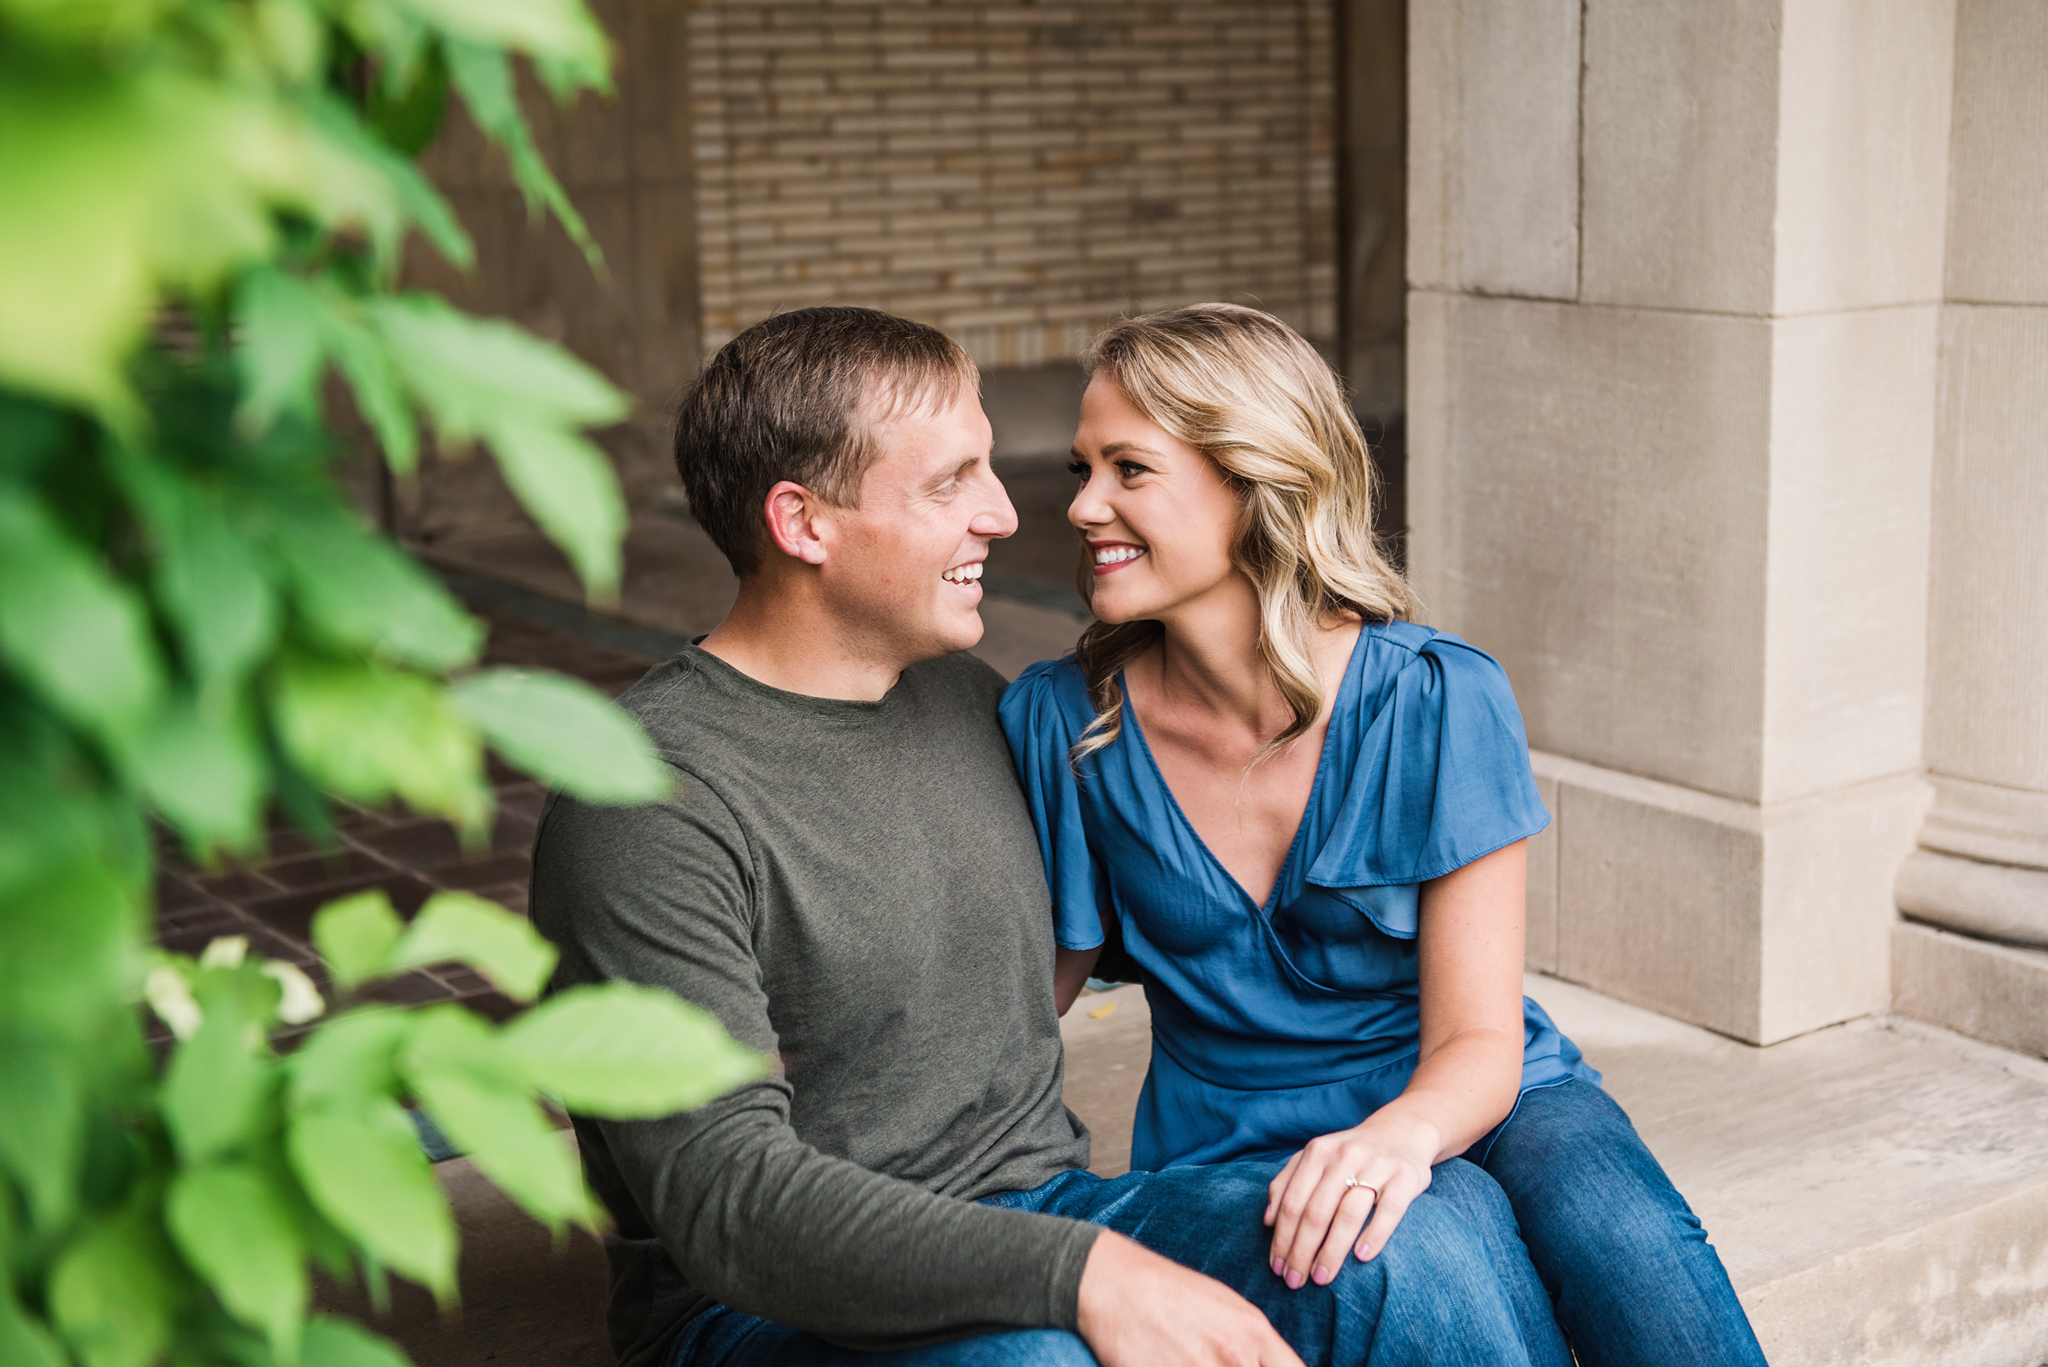 George_Eastman_House_Rochester_Yacht_Club_Rochester_Engagement_Session_JILL_STUDIO_Rochester_NY_Photographer_DSC_7983.jpg